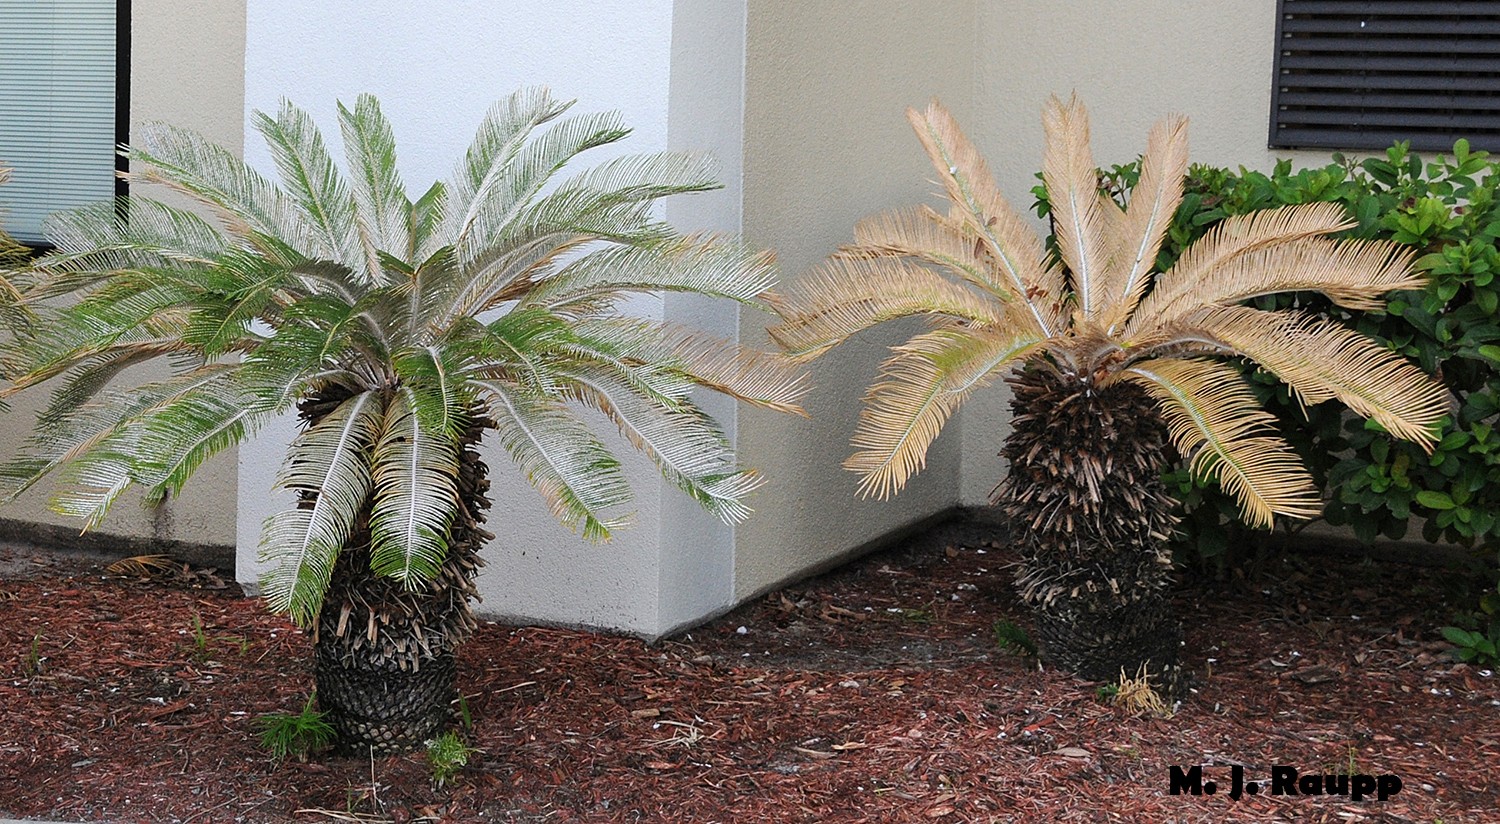 With populations of scales in the myriad thousands, the sago palm on the left may soon meet the fate of its partner on the right.